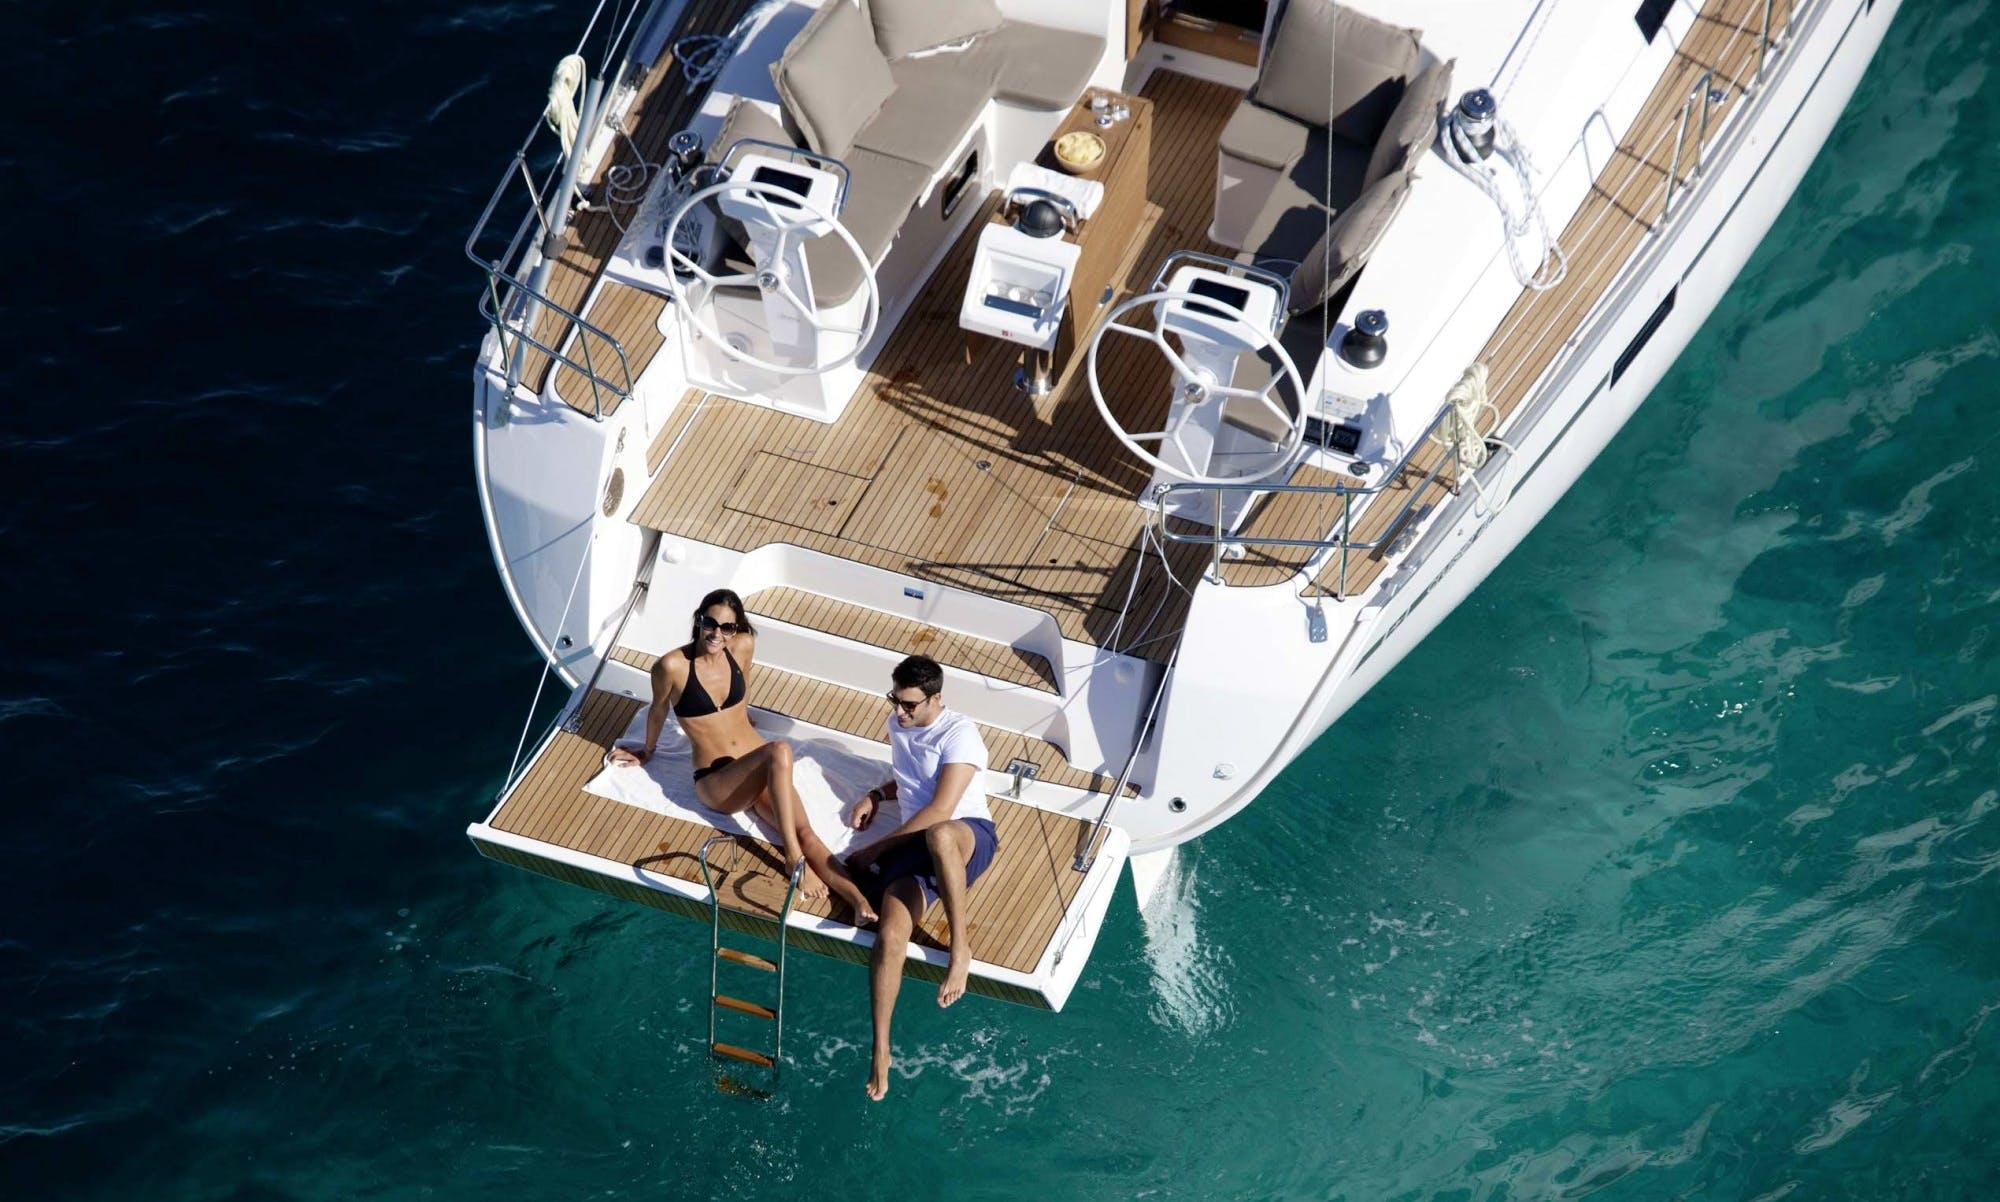 Luxury Yacht Bavaria 2014 rental in Constanța, Mangalia or Eforie